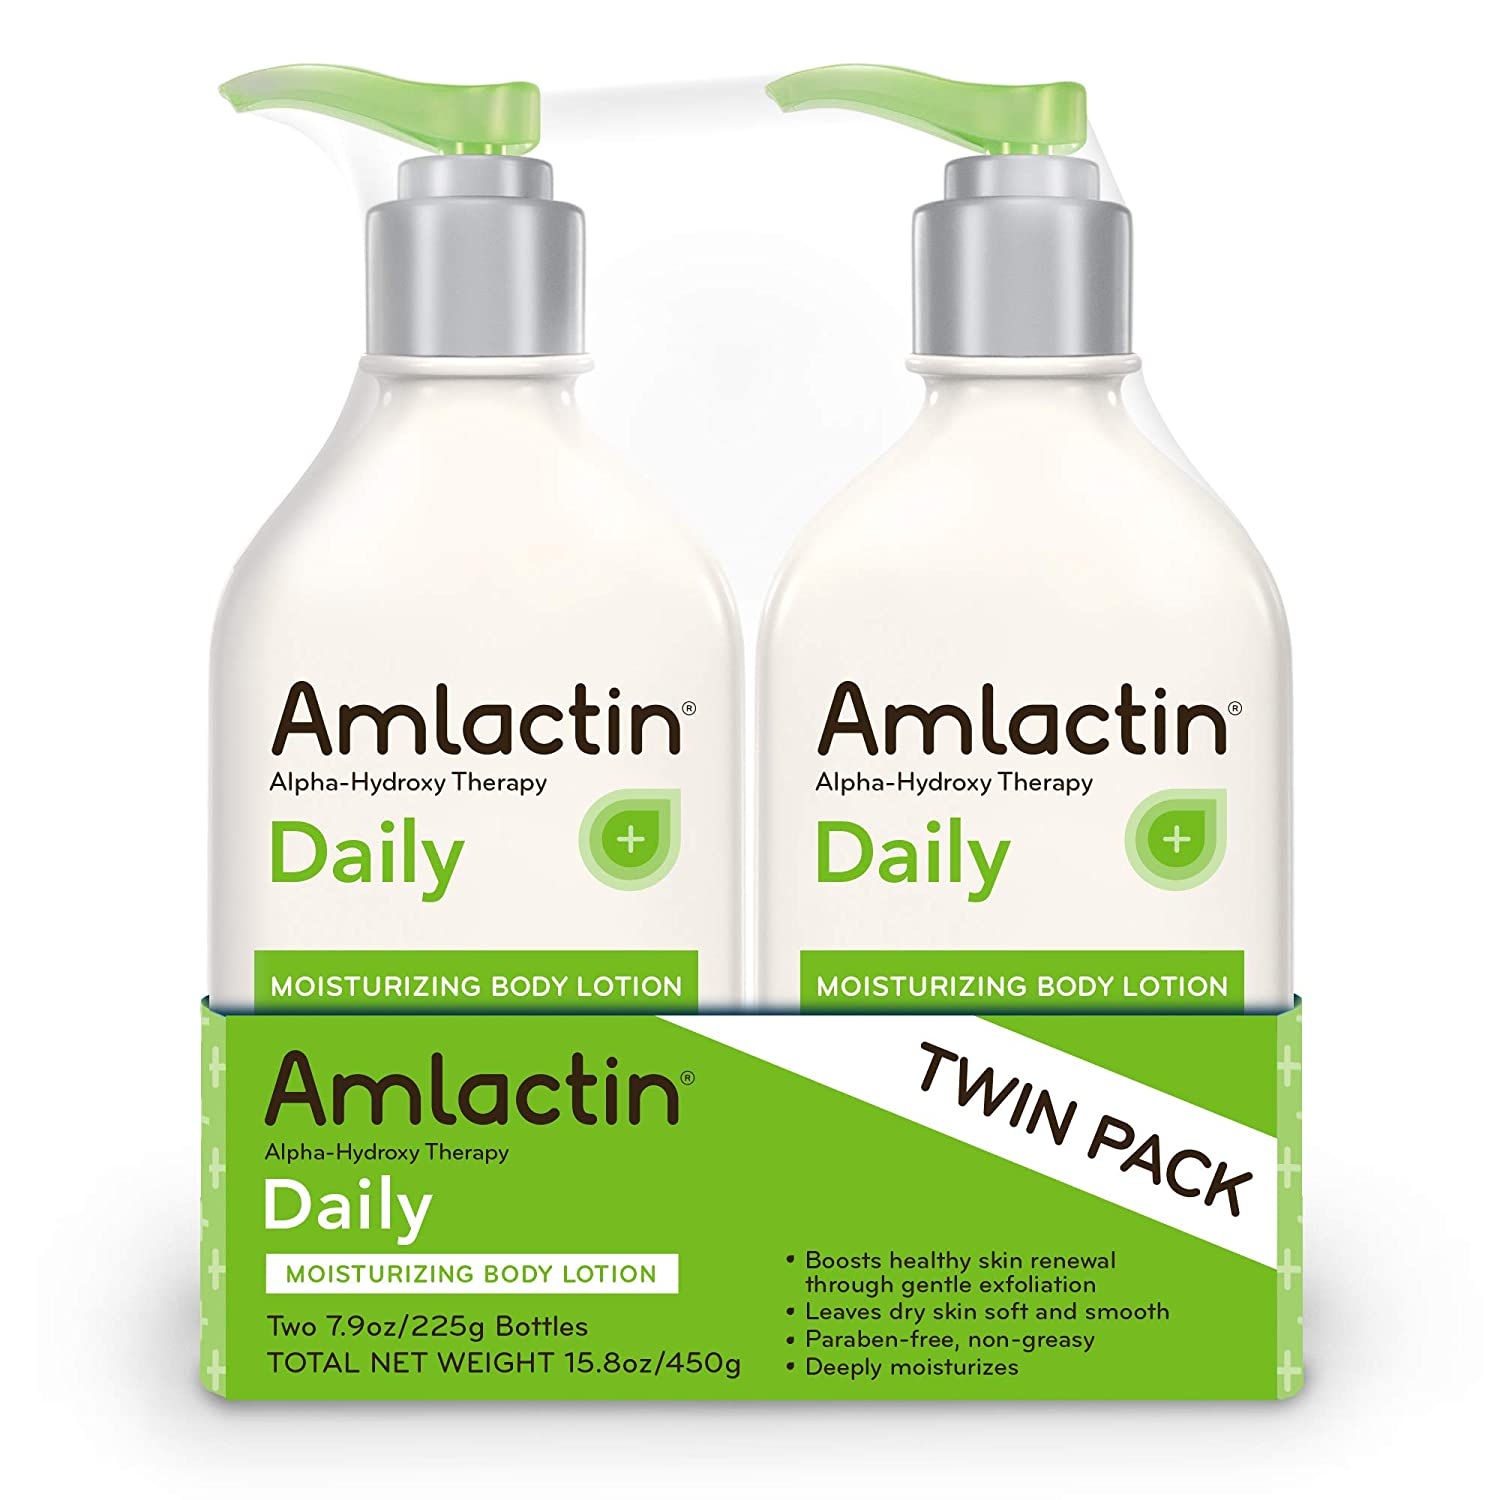 Amlactin Moisturizers Without Fatty Alcohols